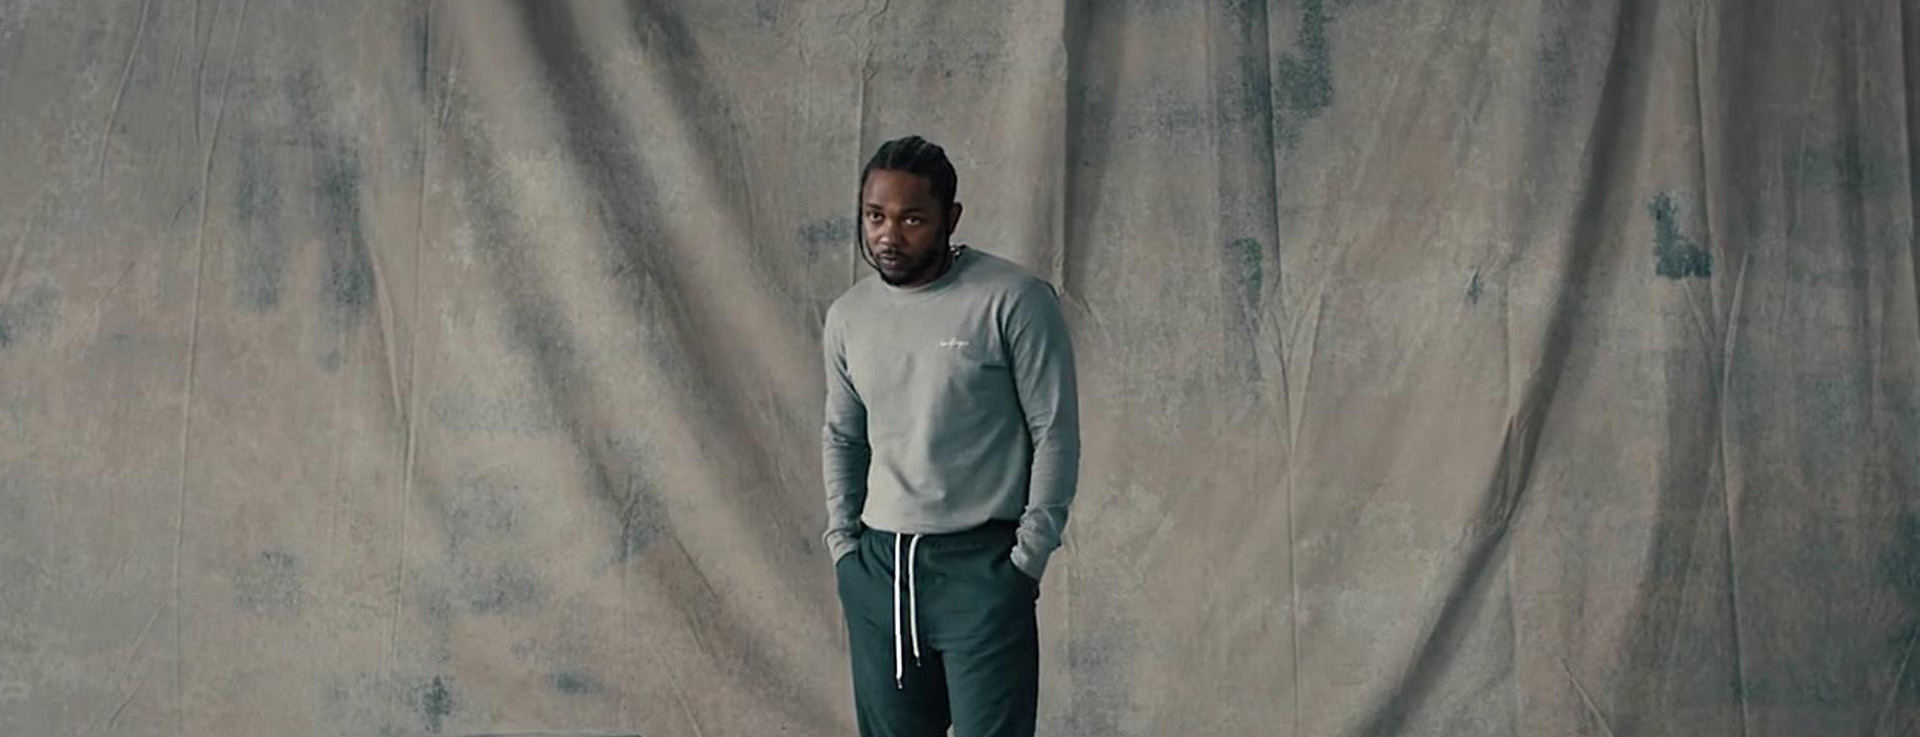 "Kendrick Lamar ""LOVE"" ft. Zacari by Dave Meyers"